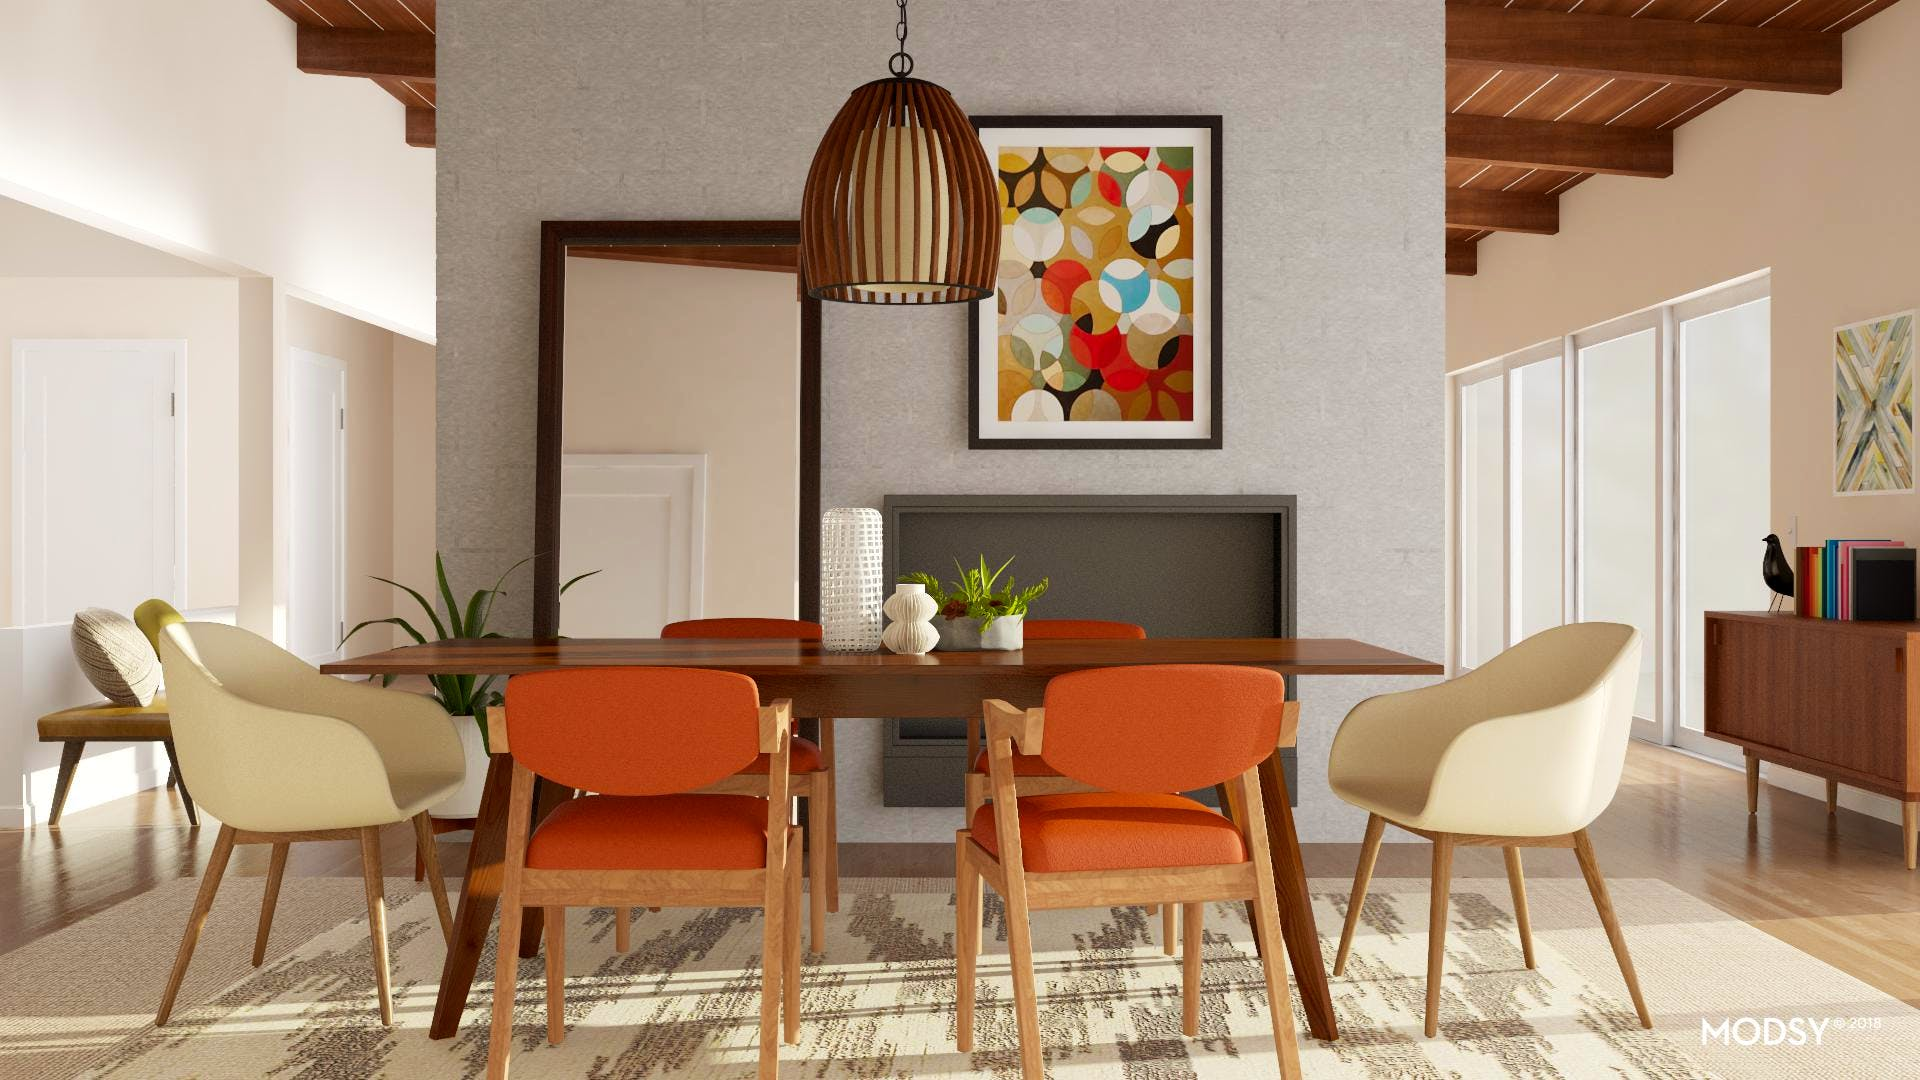 A Warmly Colorful Modern Dining Room